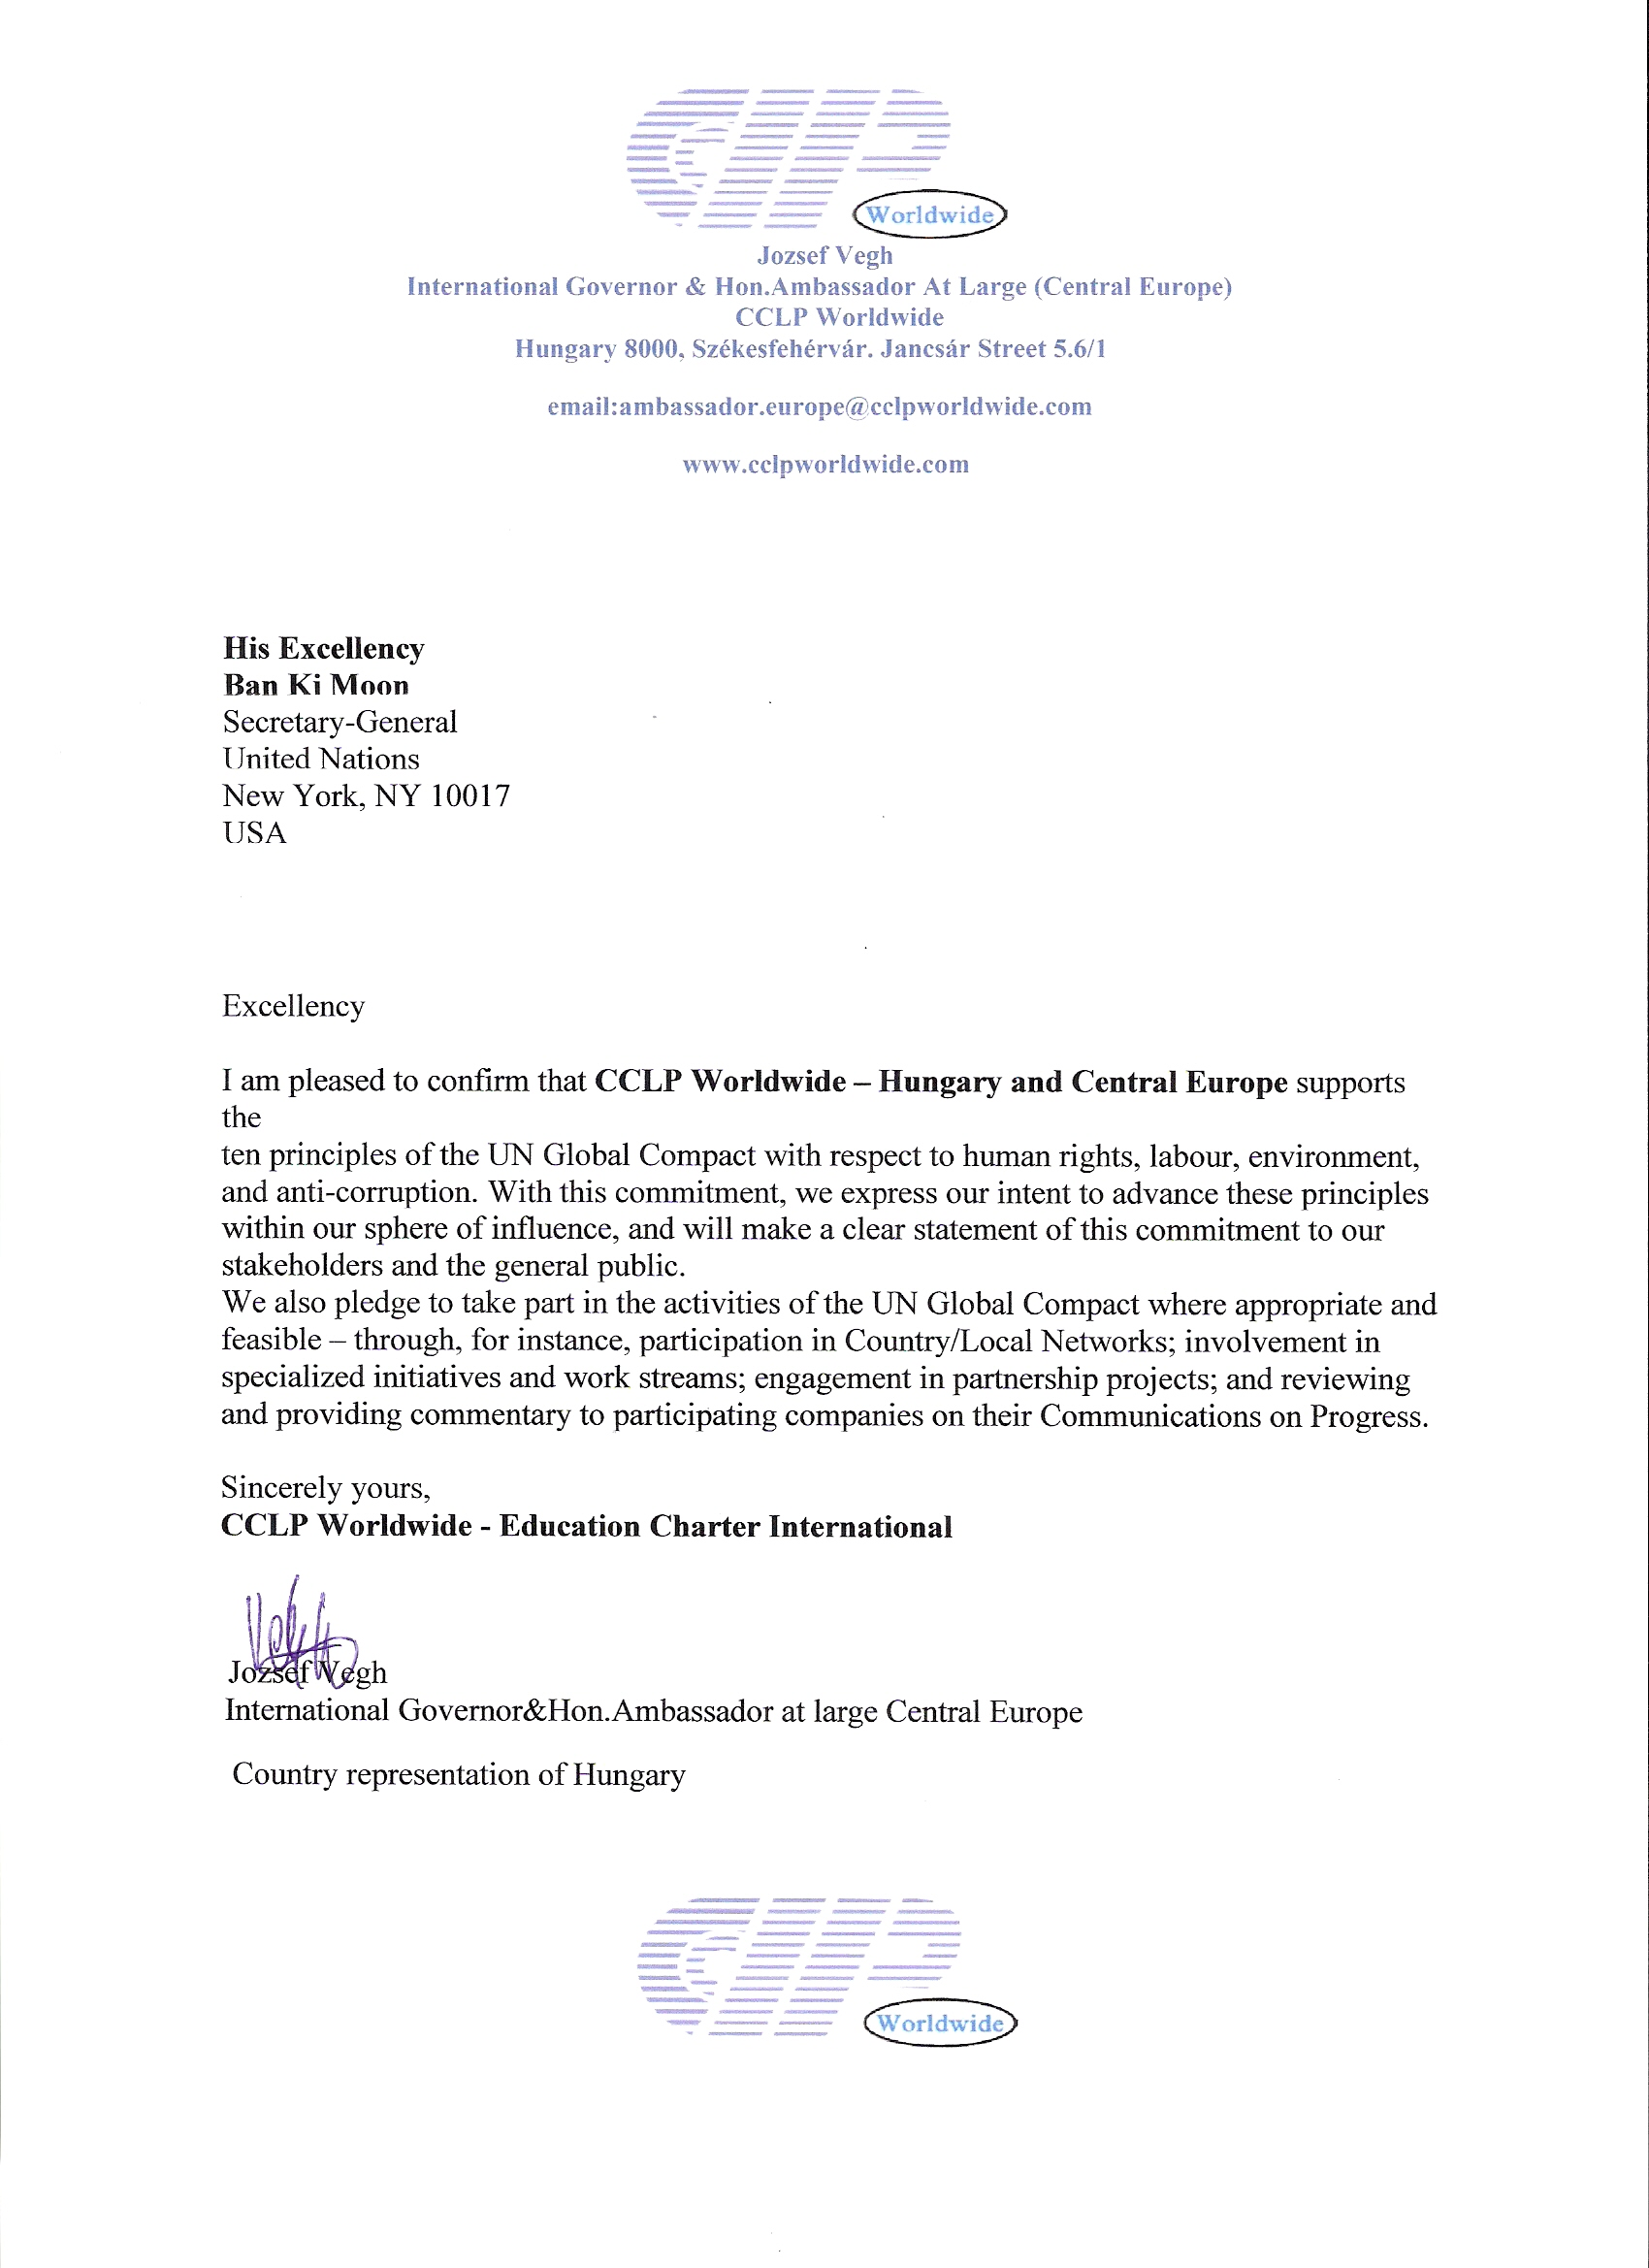 CCLP Worldwide Hungary and Central Europe | UN Global Compact